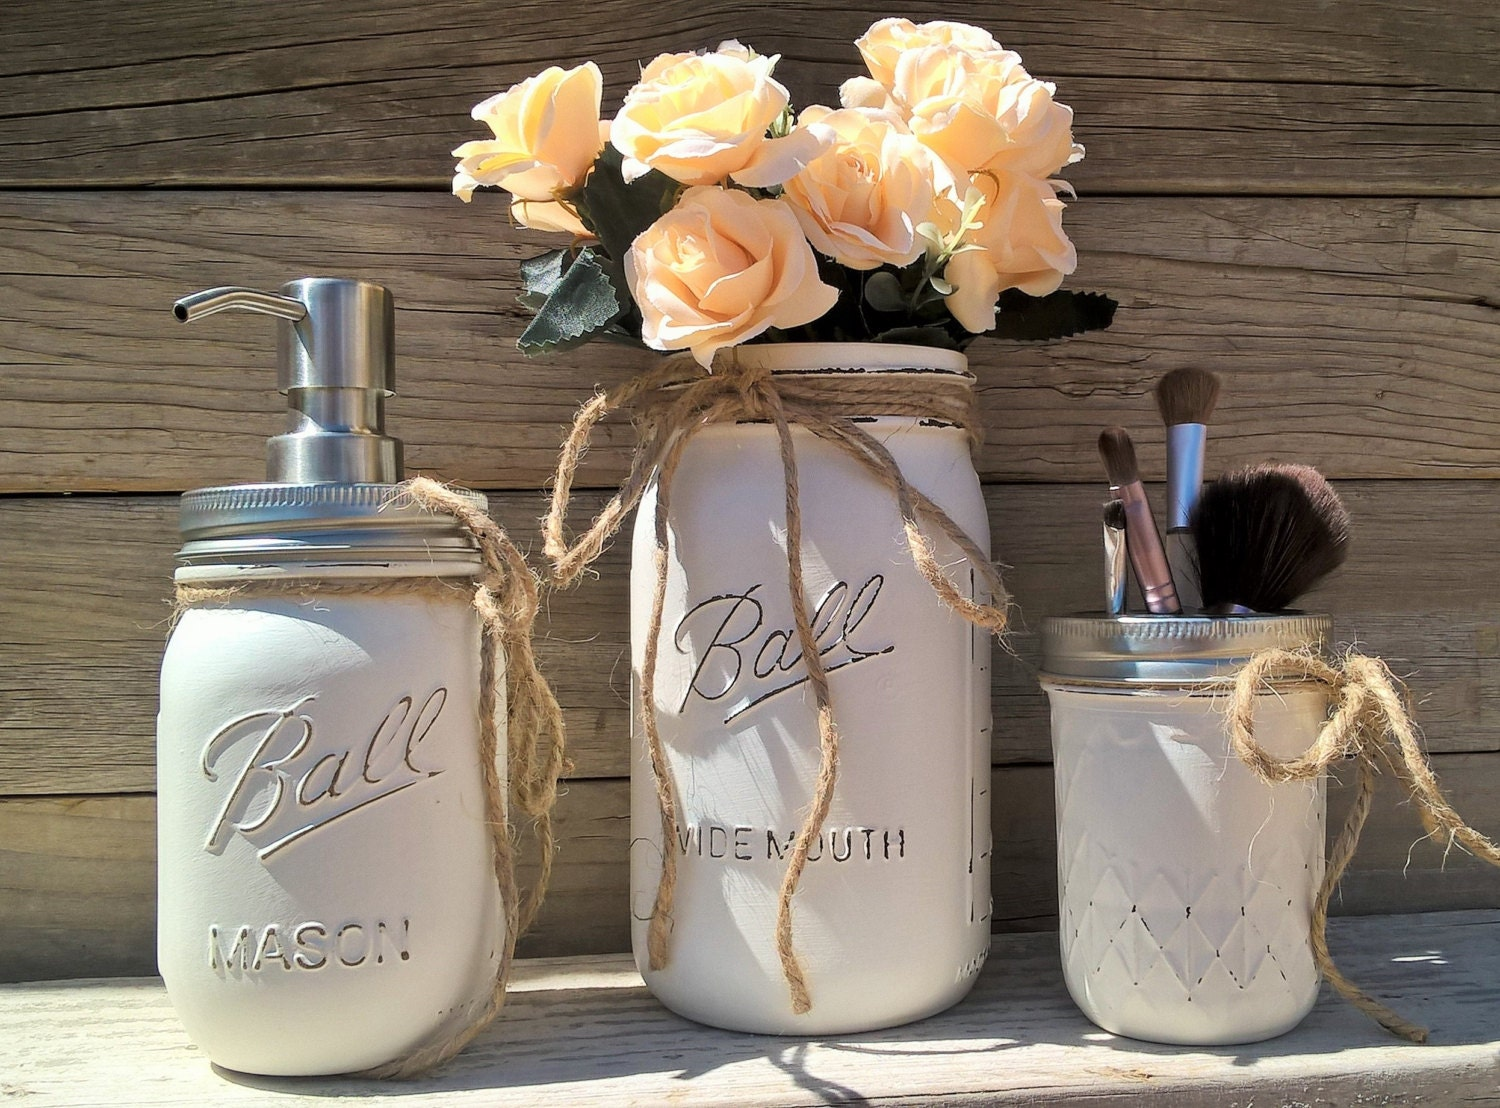 Bathroom decor ball mason jar bathroom decor painted mason for Bathroom decor mason jars